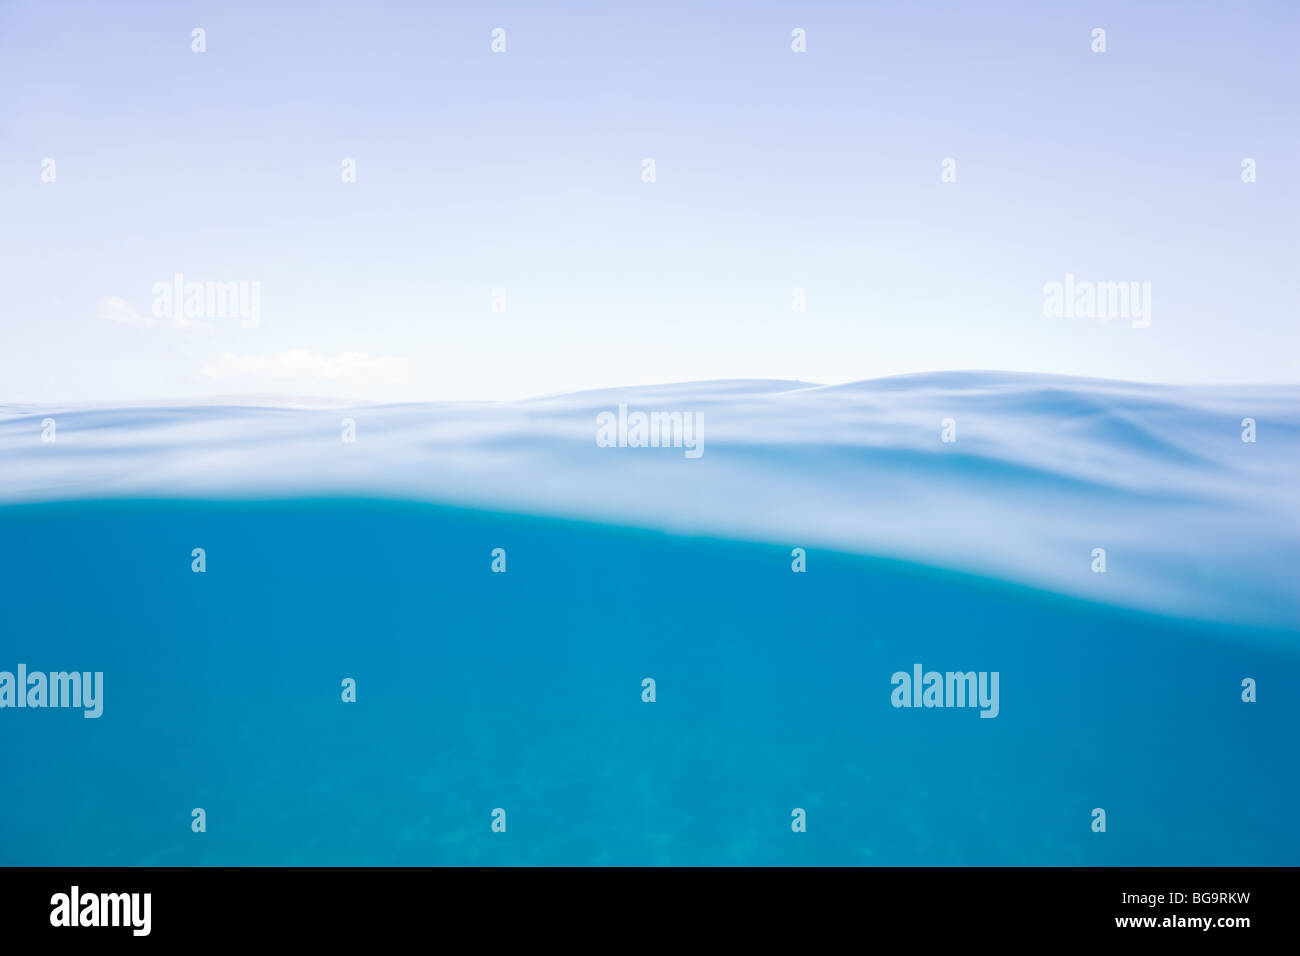 purity water background - Stock Image